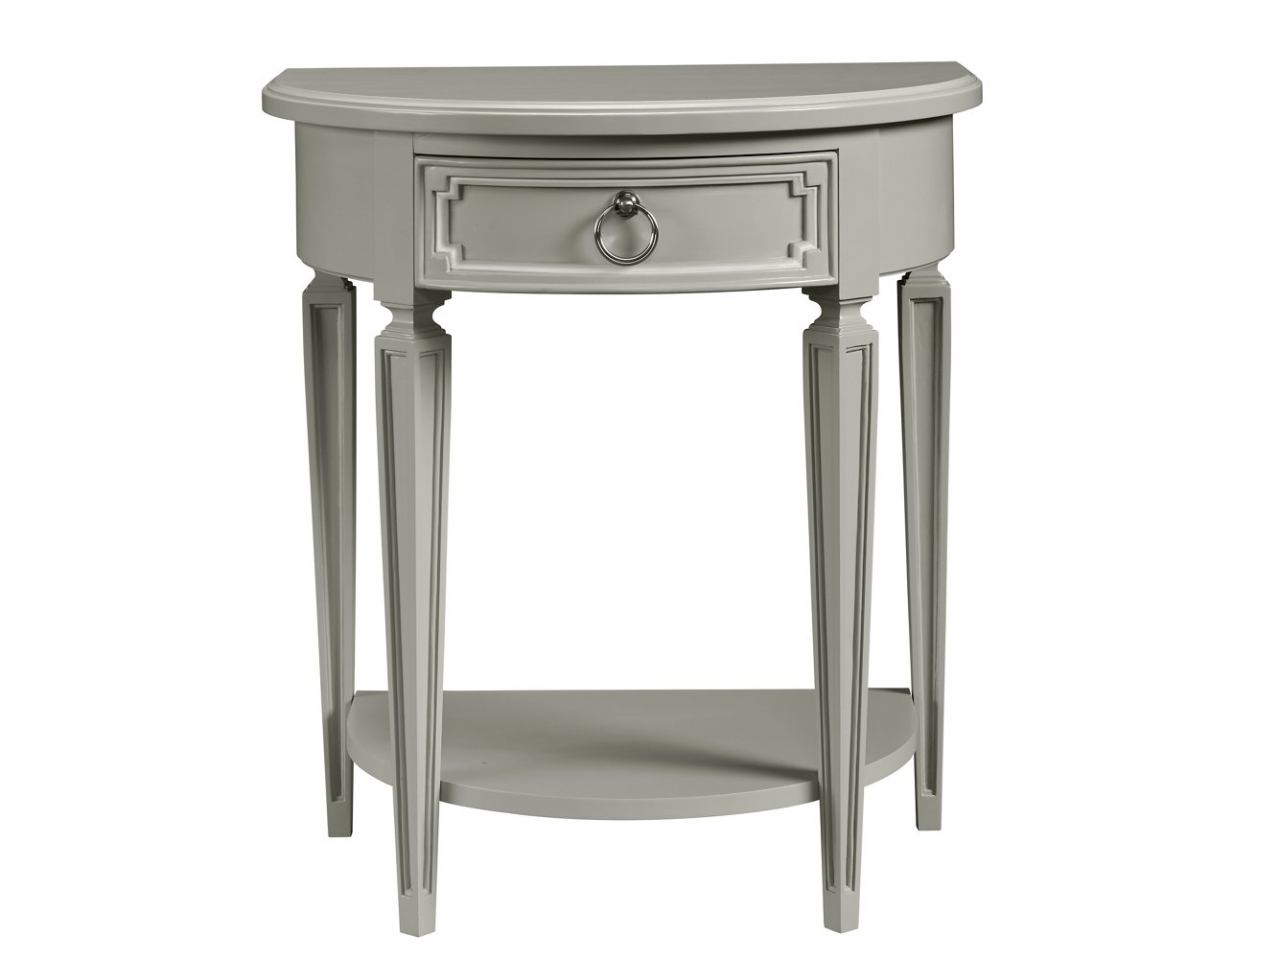 Stone & Leigh Clementine Court Bedside Table in Spoon 537-53-80